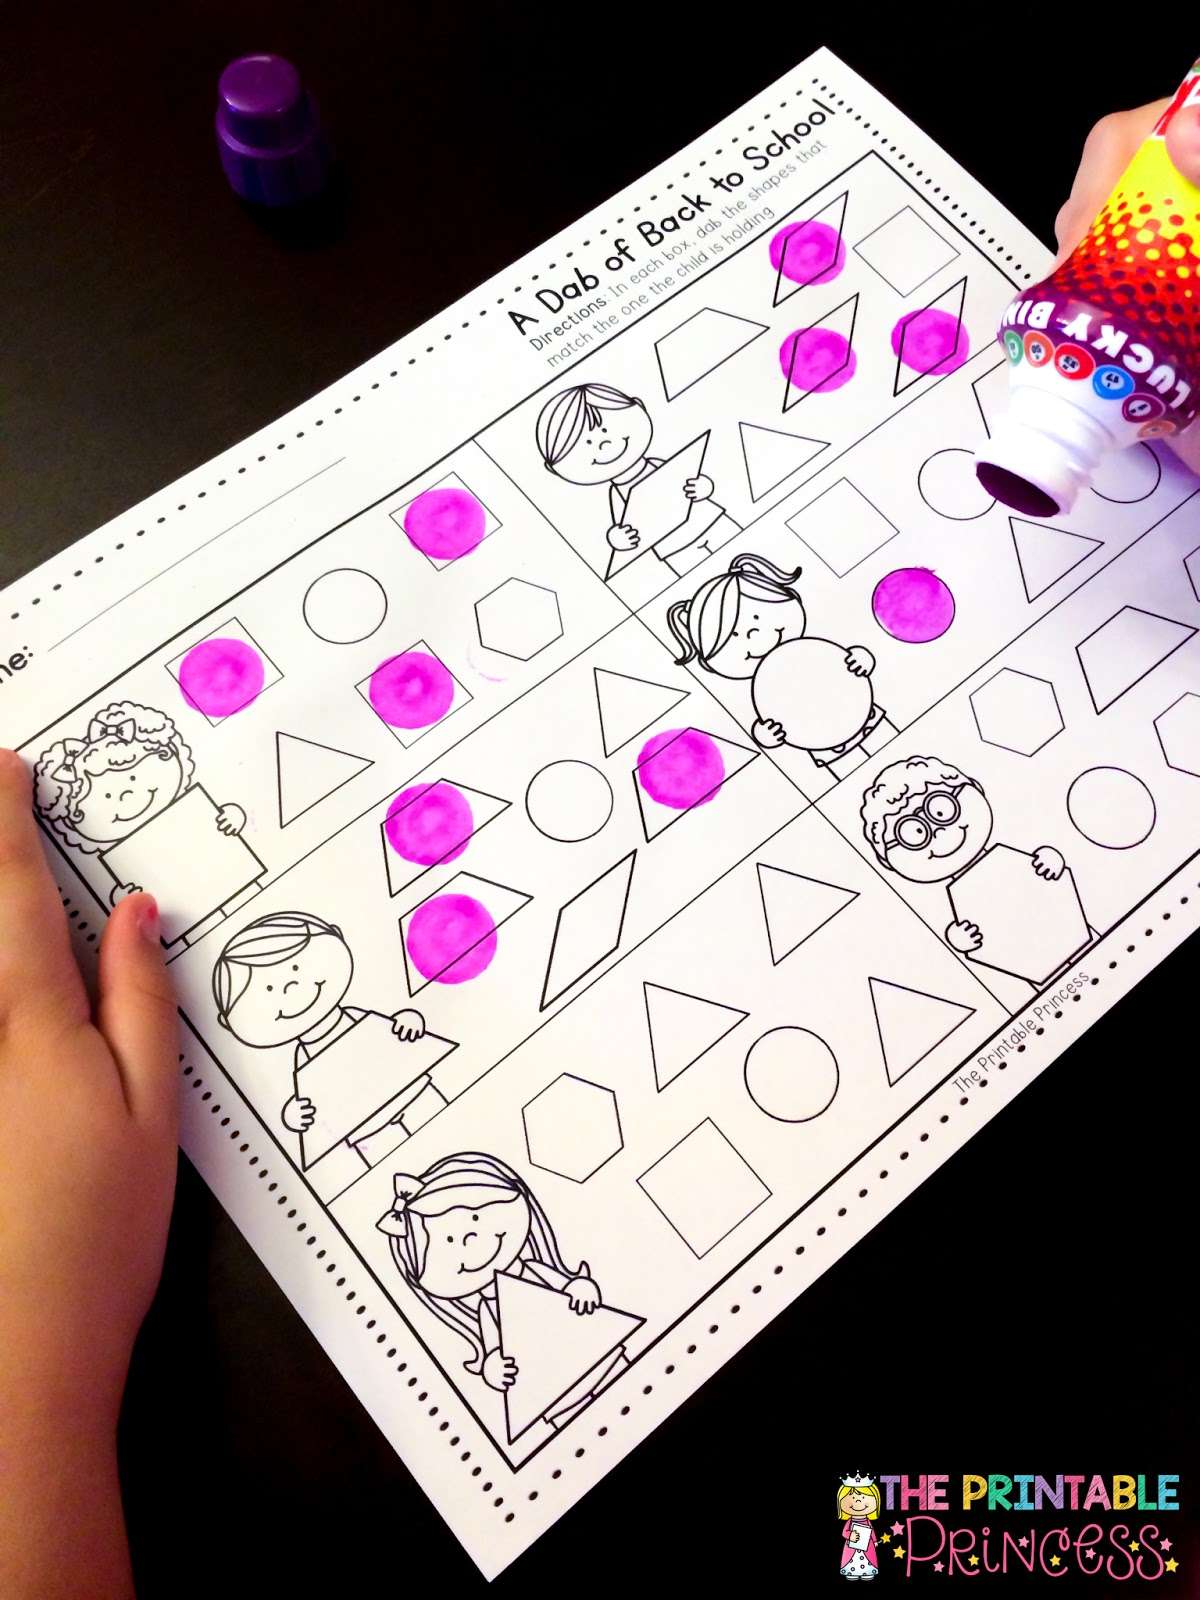 The Printable Princess Using Bingo Dabbers In The